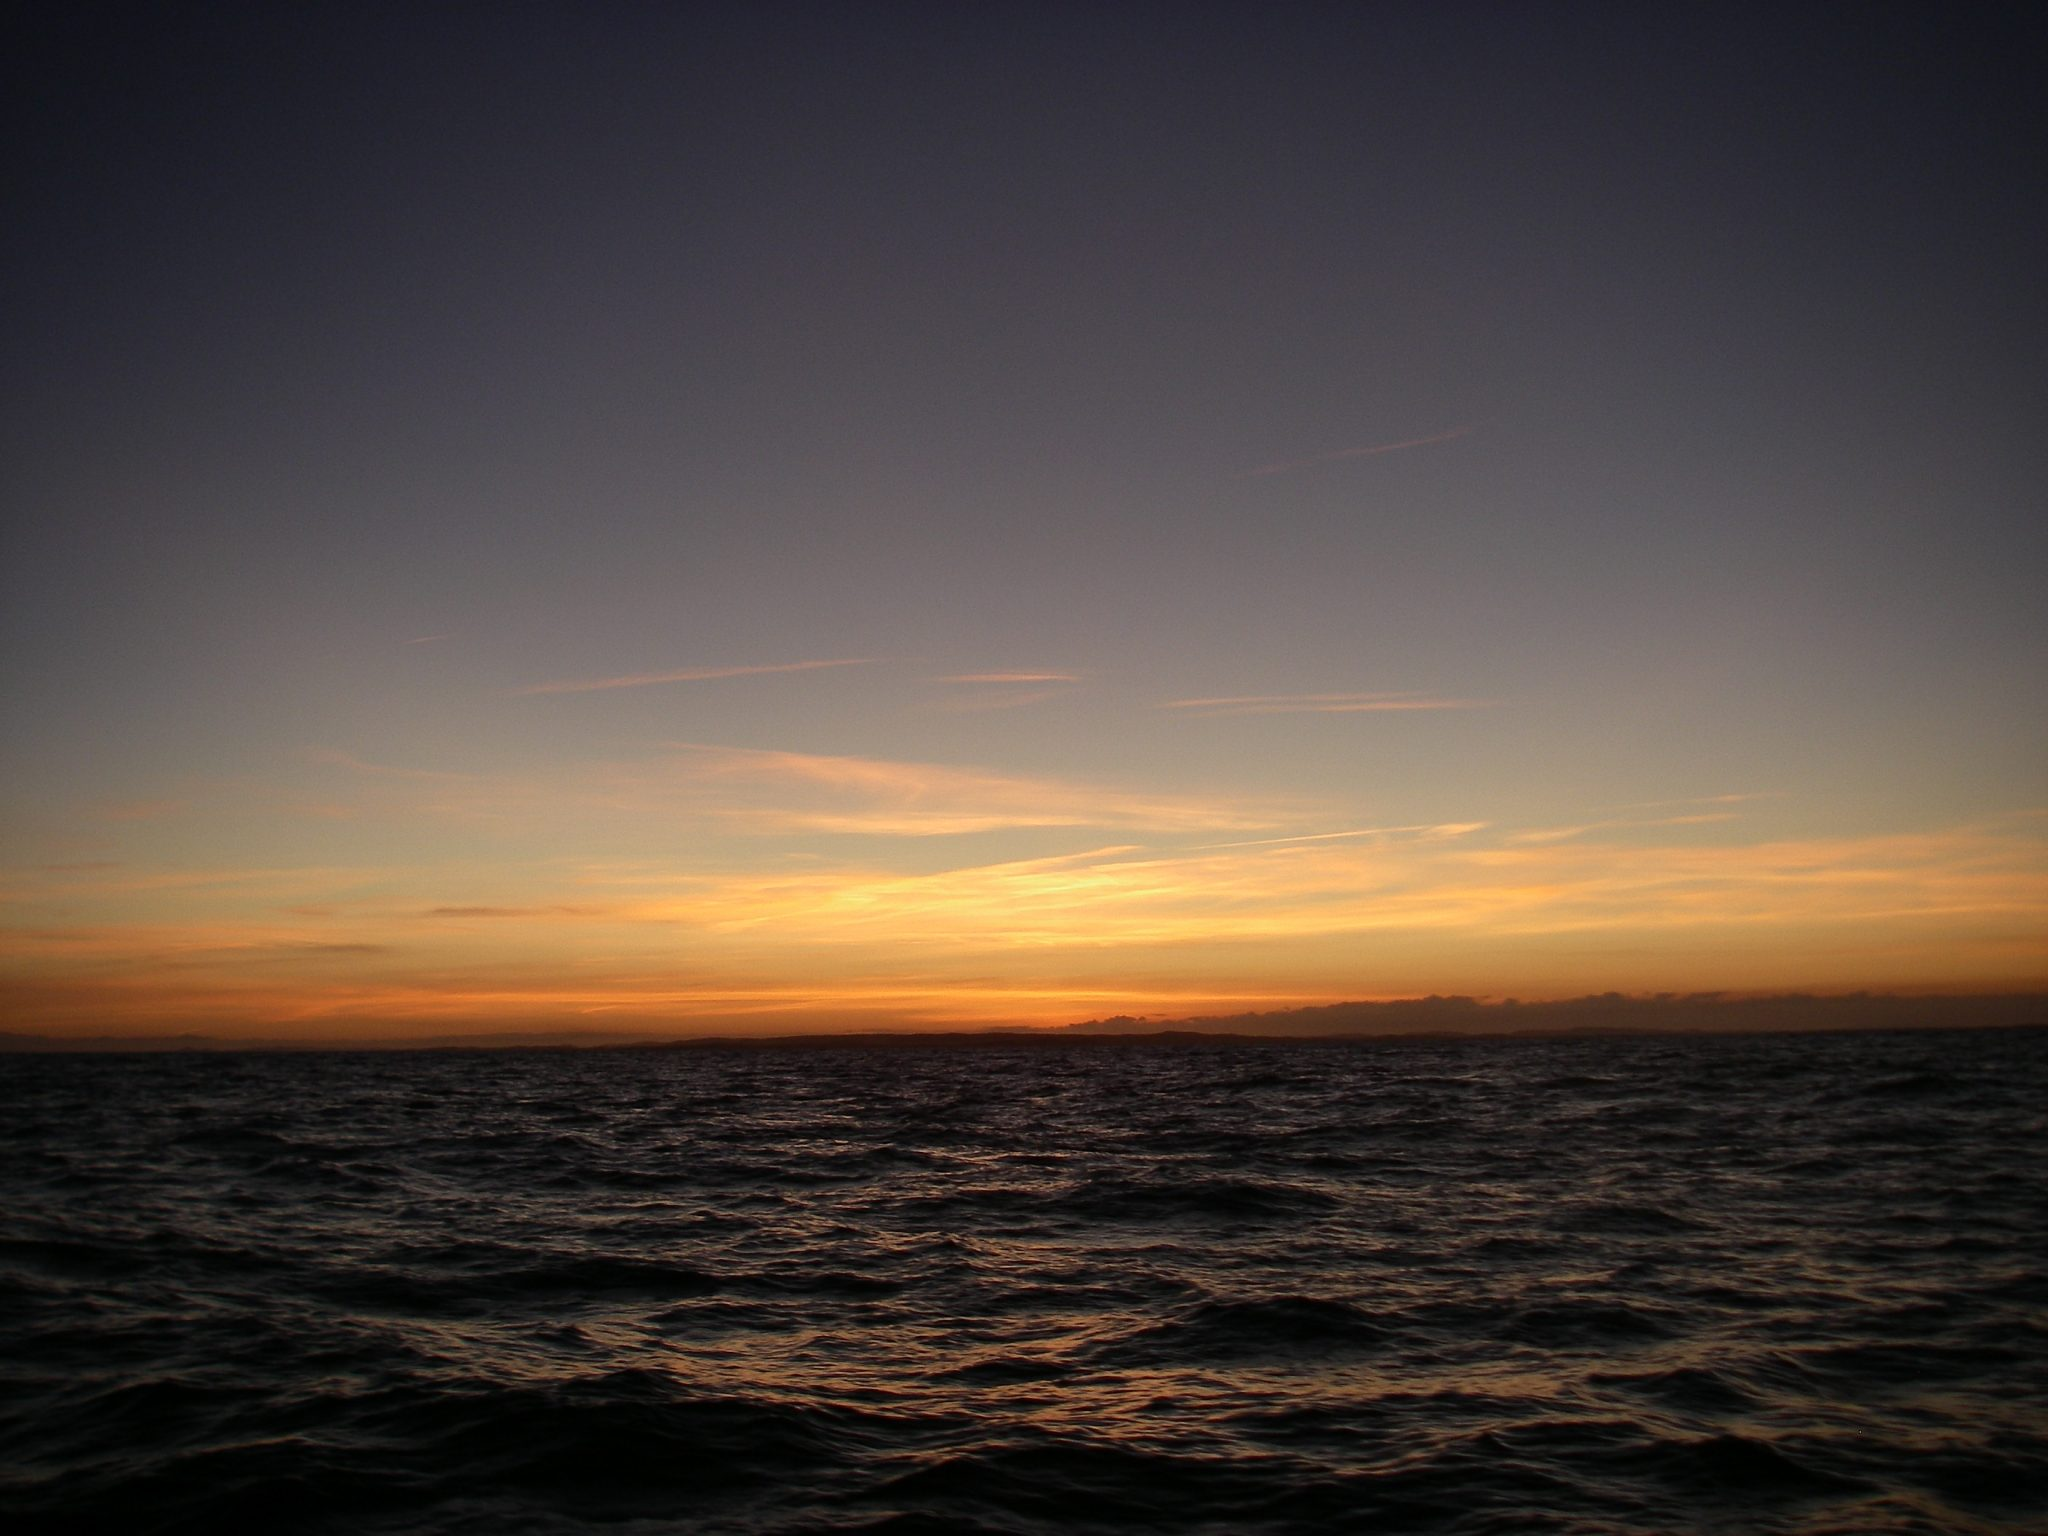 74. Sunset on the Tasman Sea